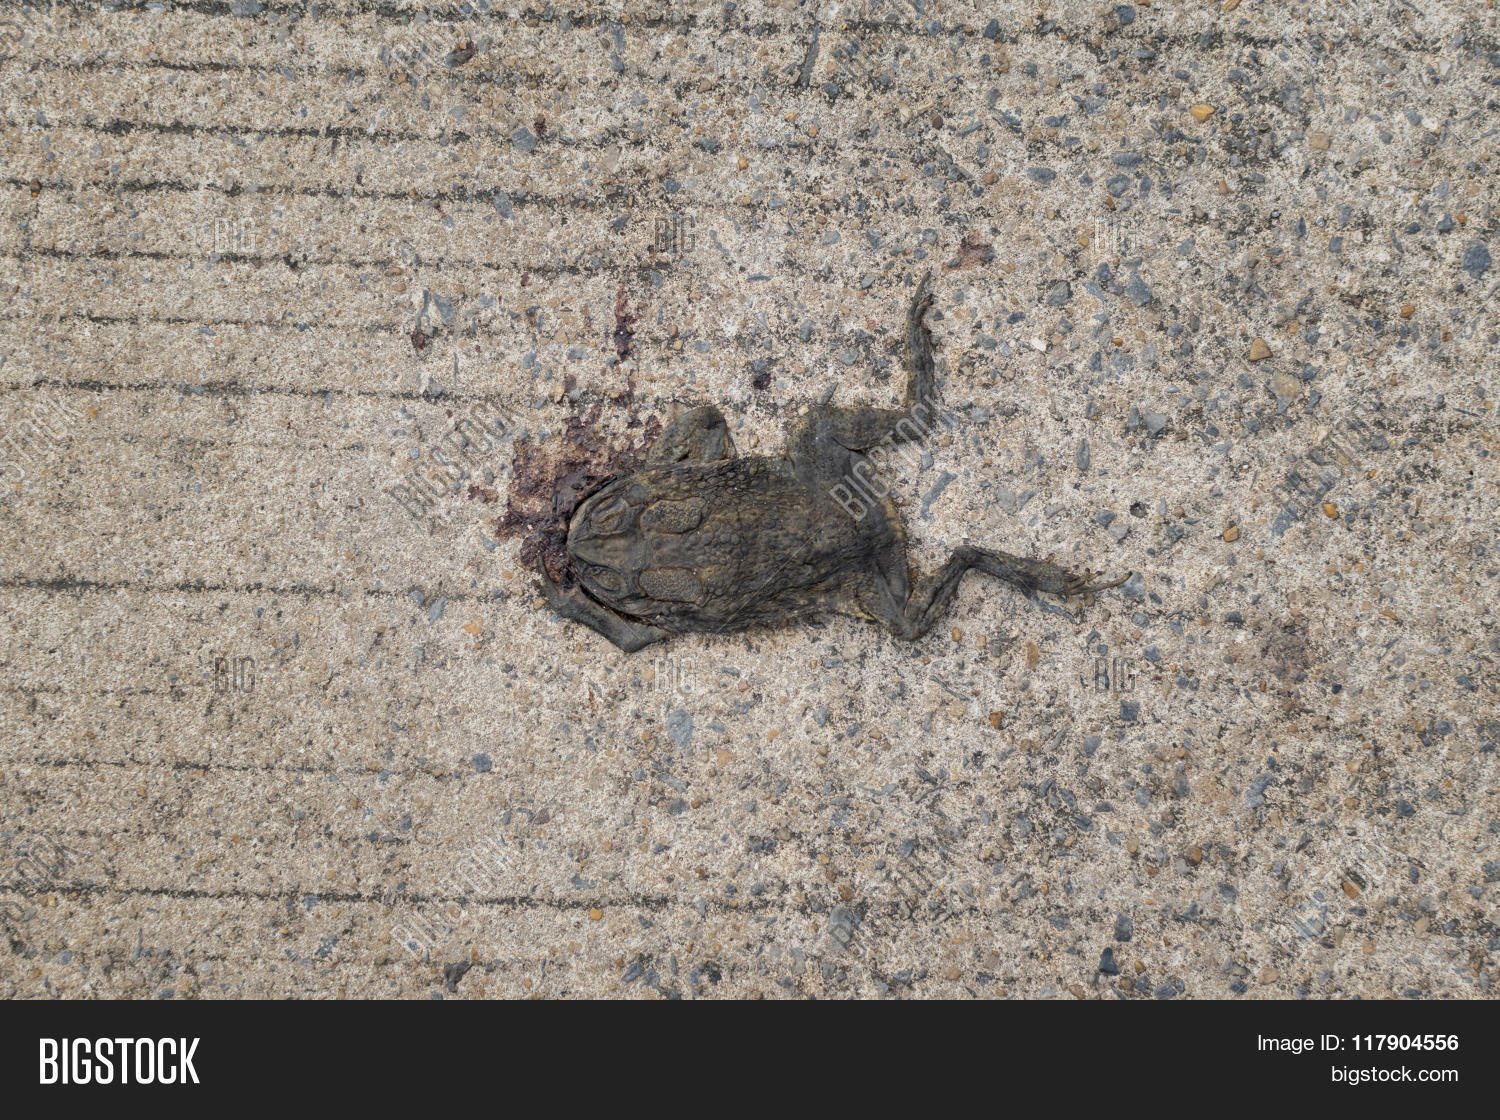 dead toad on road image photo free trial bigstock